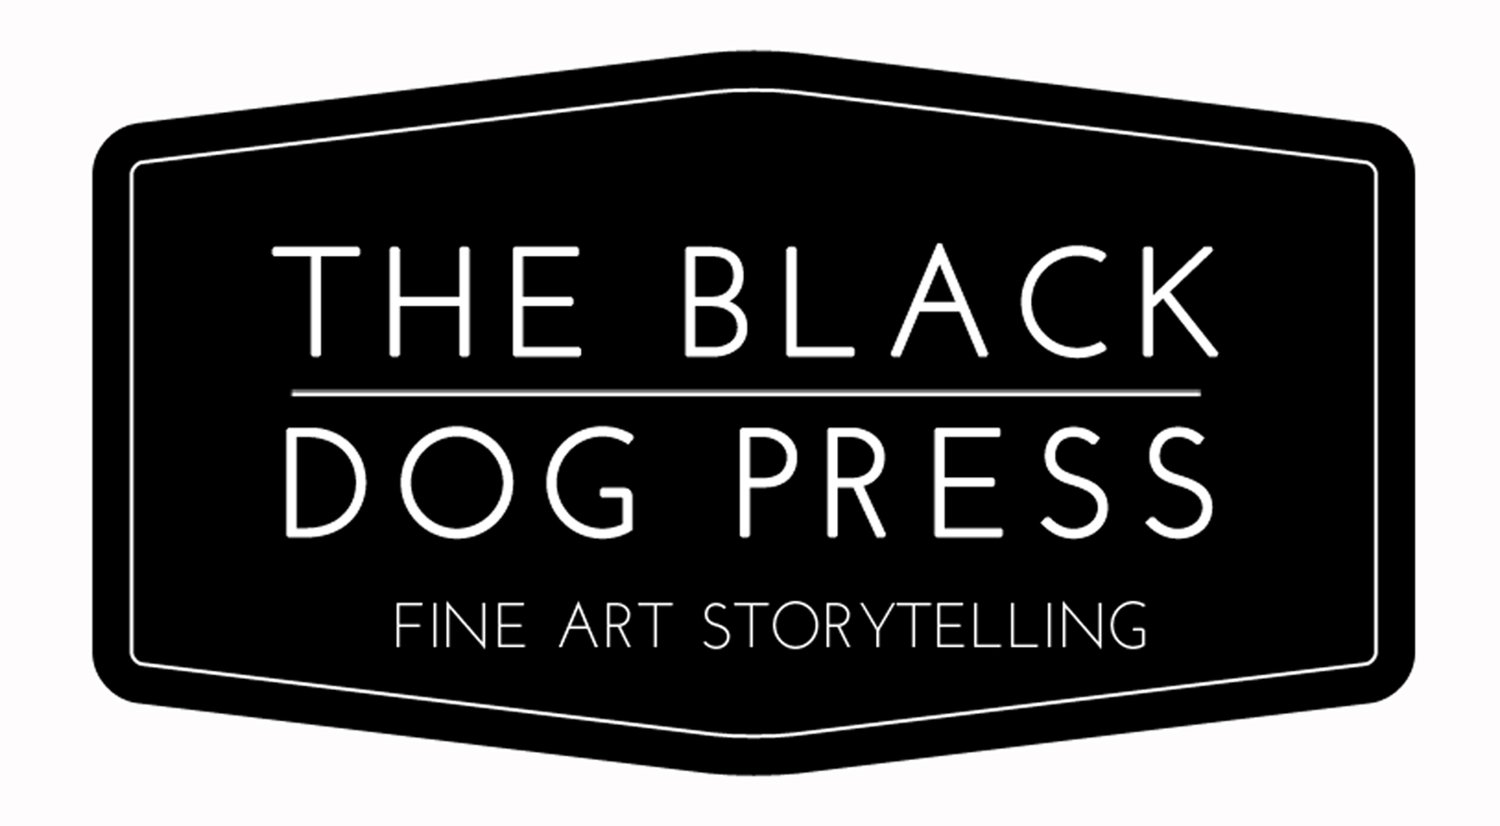 The Black Dog Press